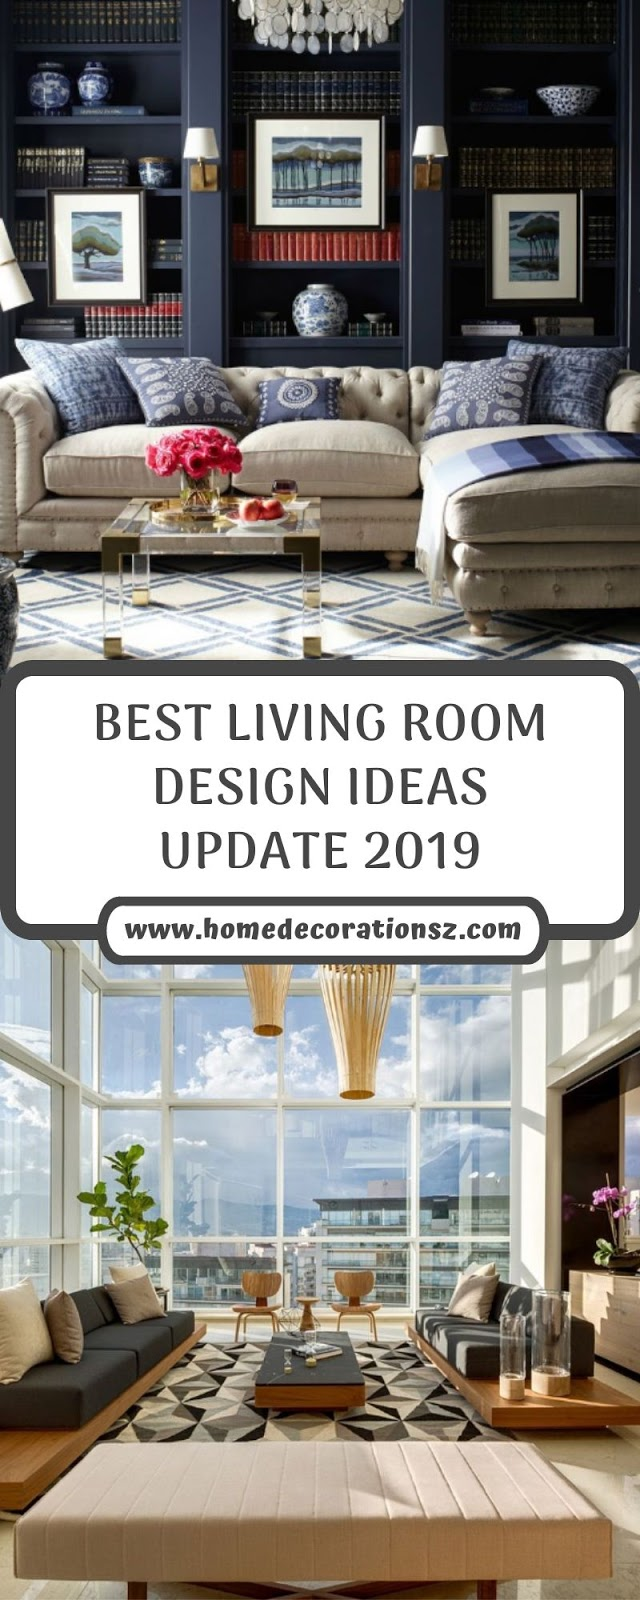 BEST LIVING ROOM DESIGN IDEAS UPDATE 2019